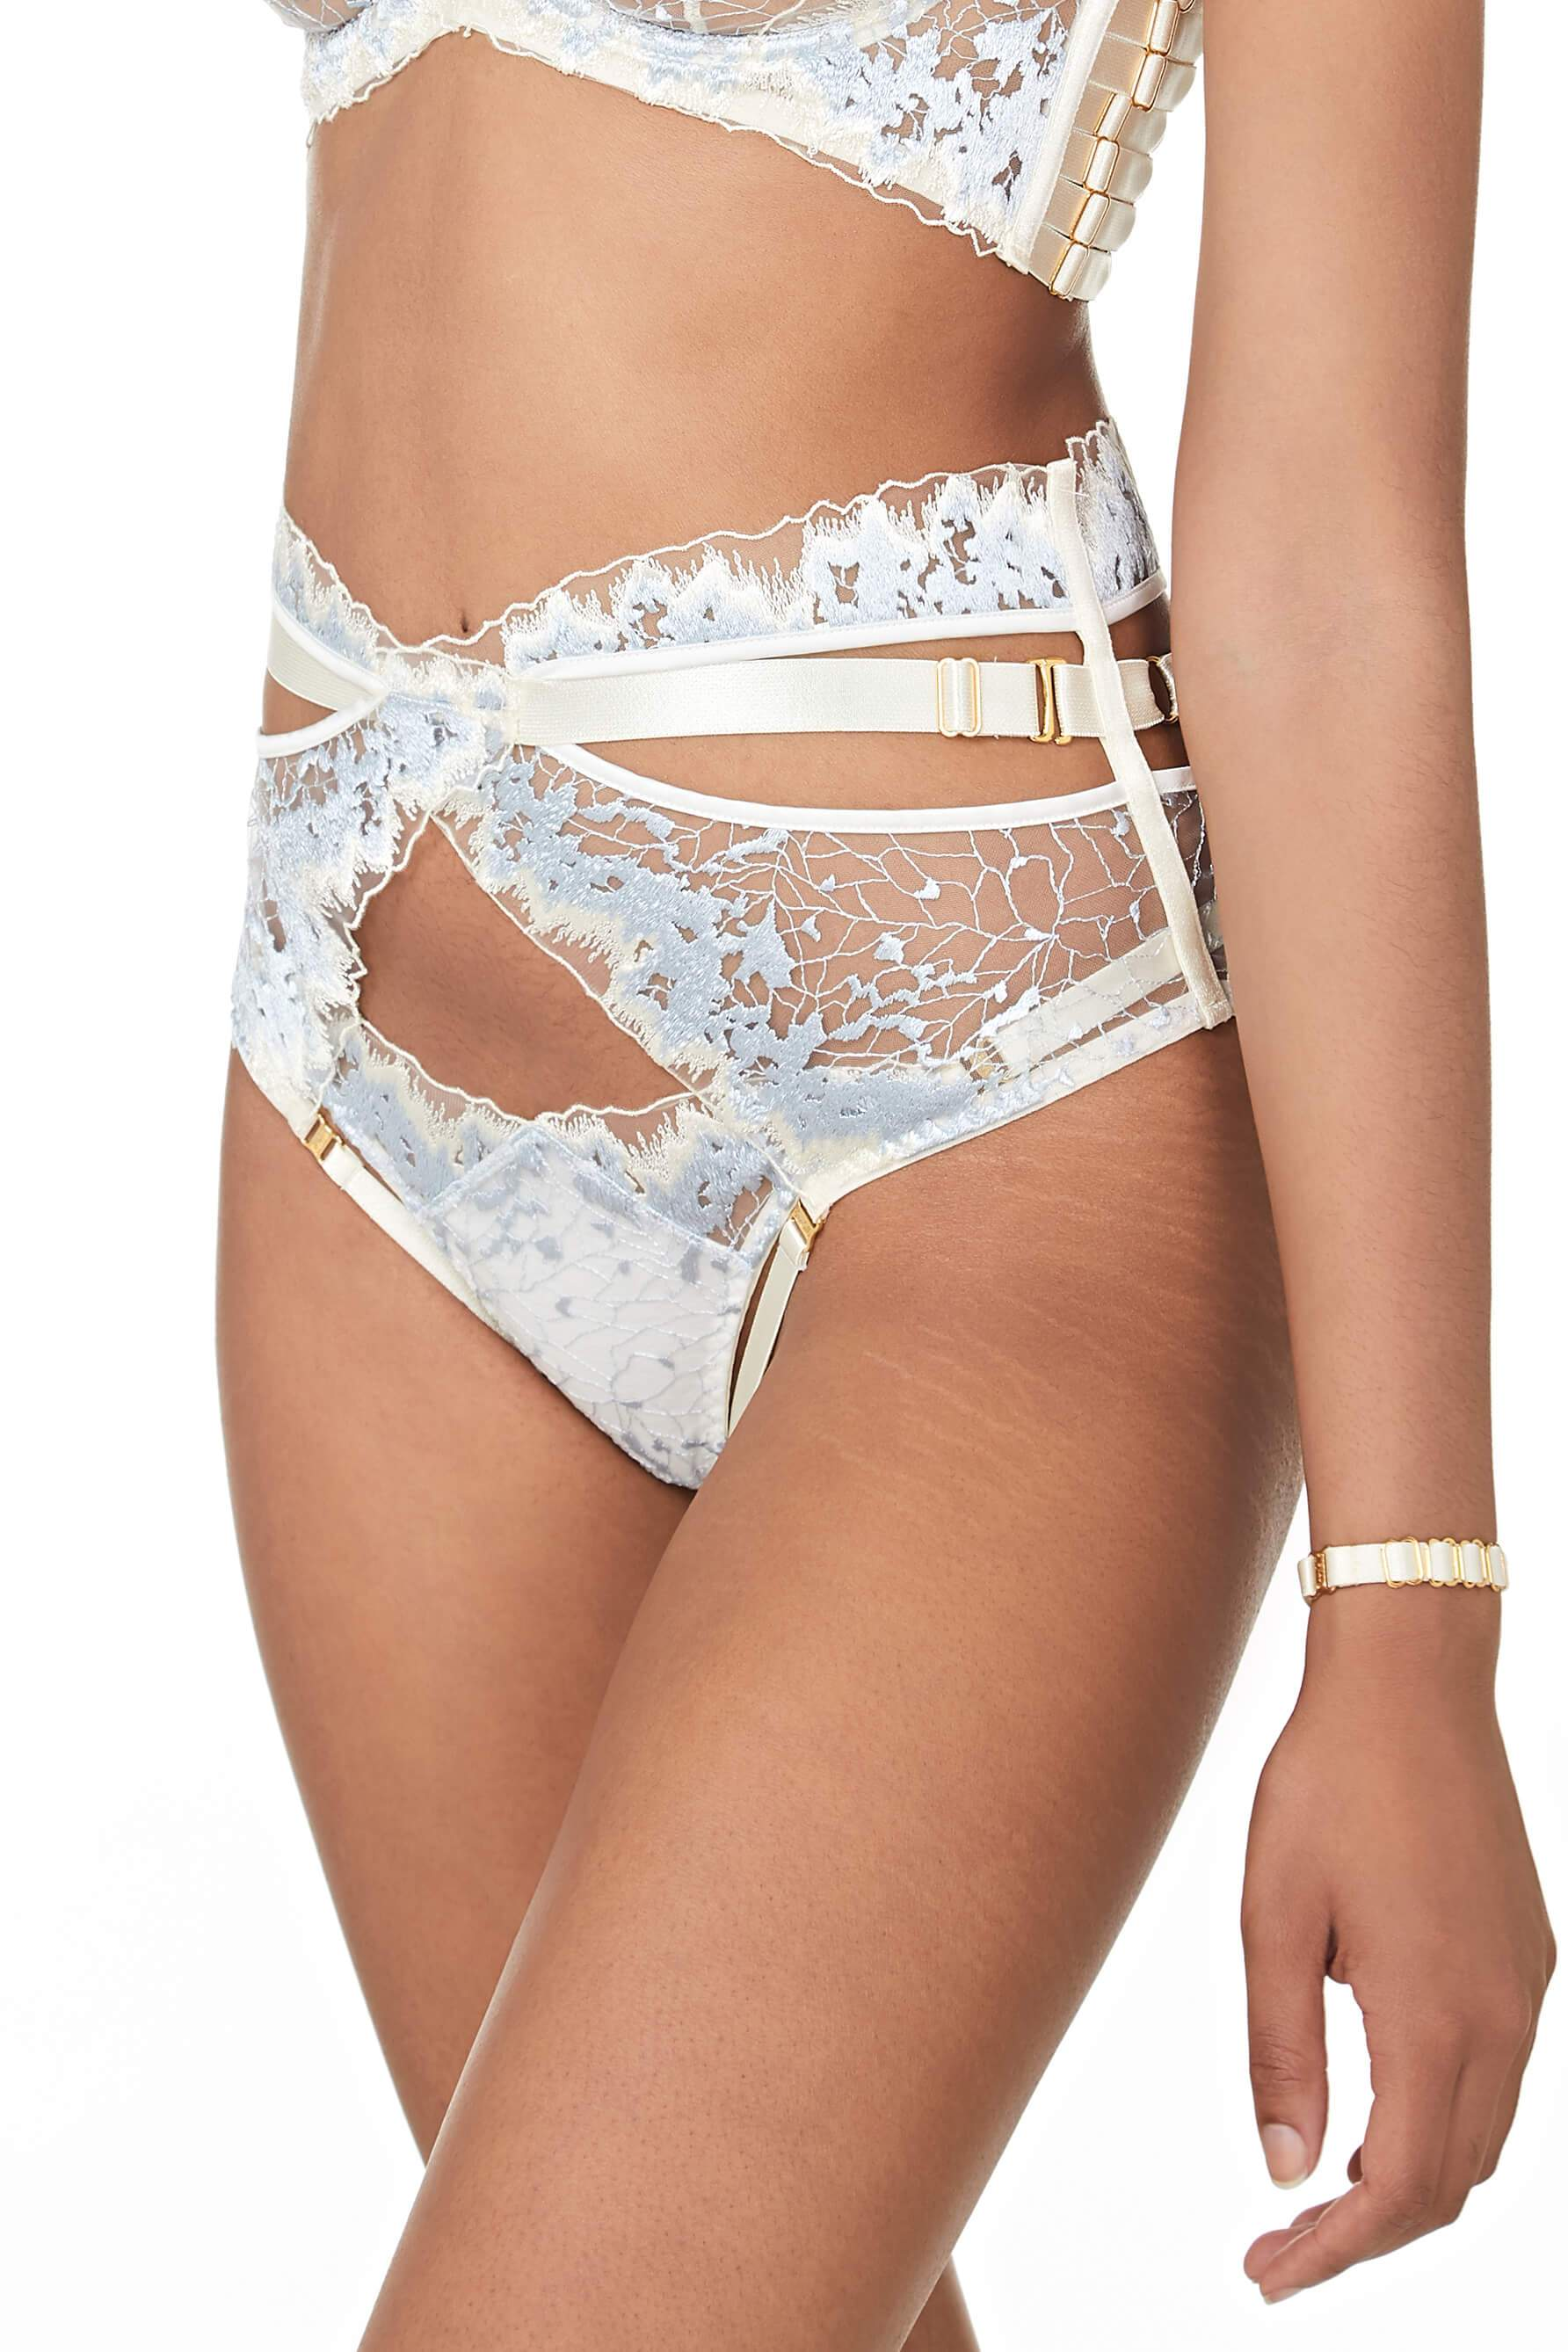 Bordelle Wilde High Waist Ouvert Brief and Thong in cream and black, on model, 3/4 side view